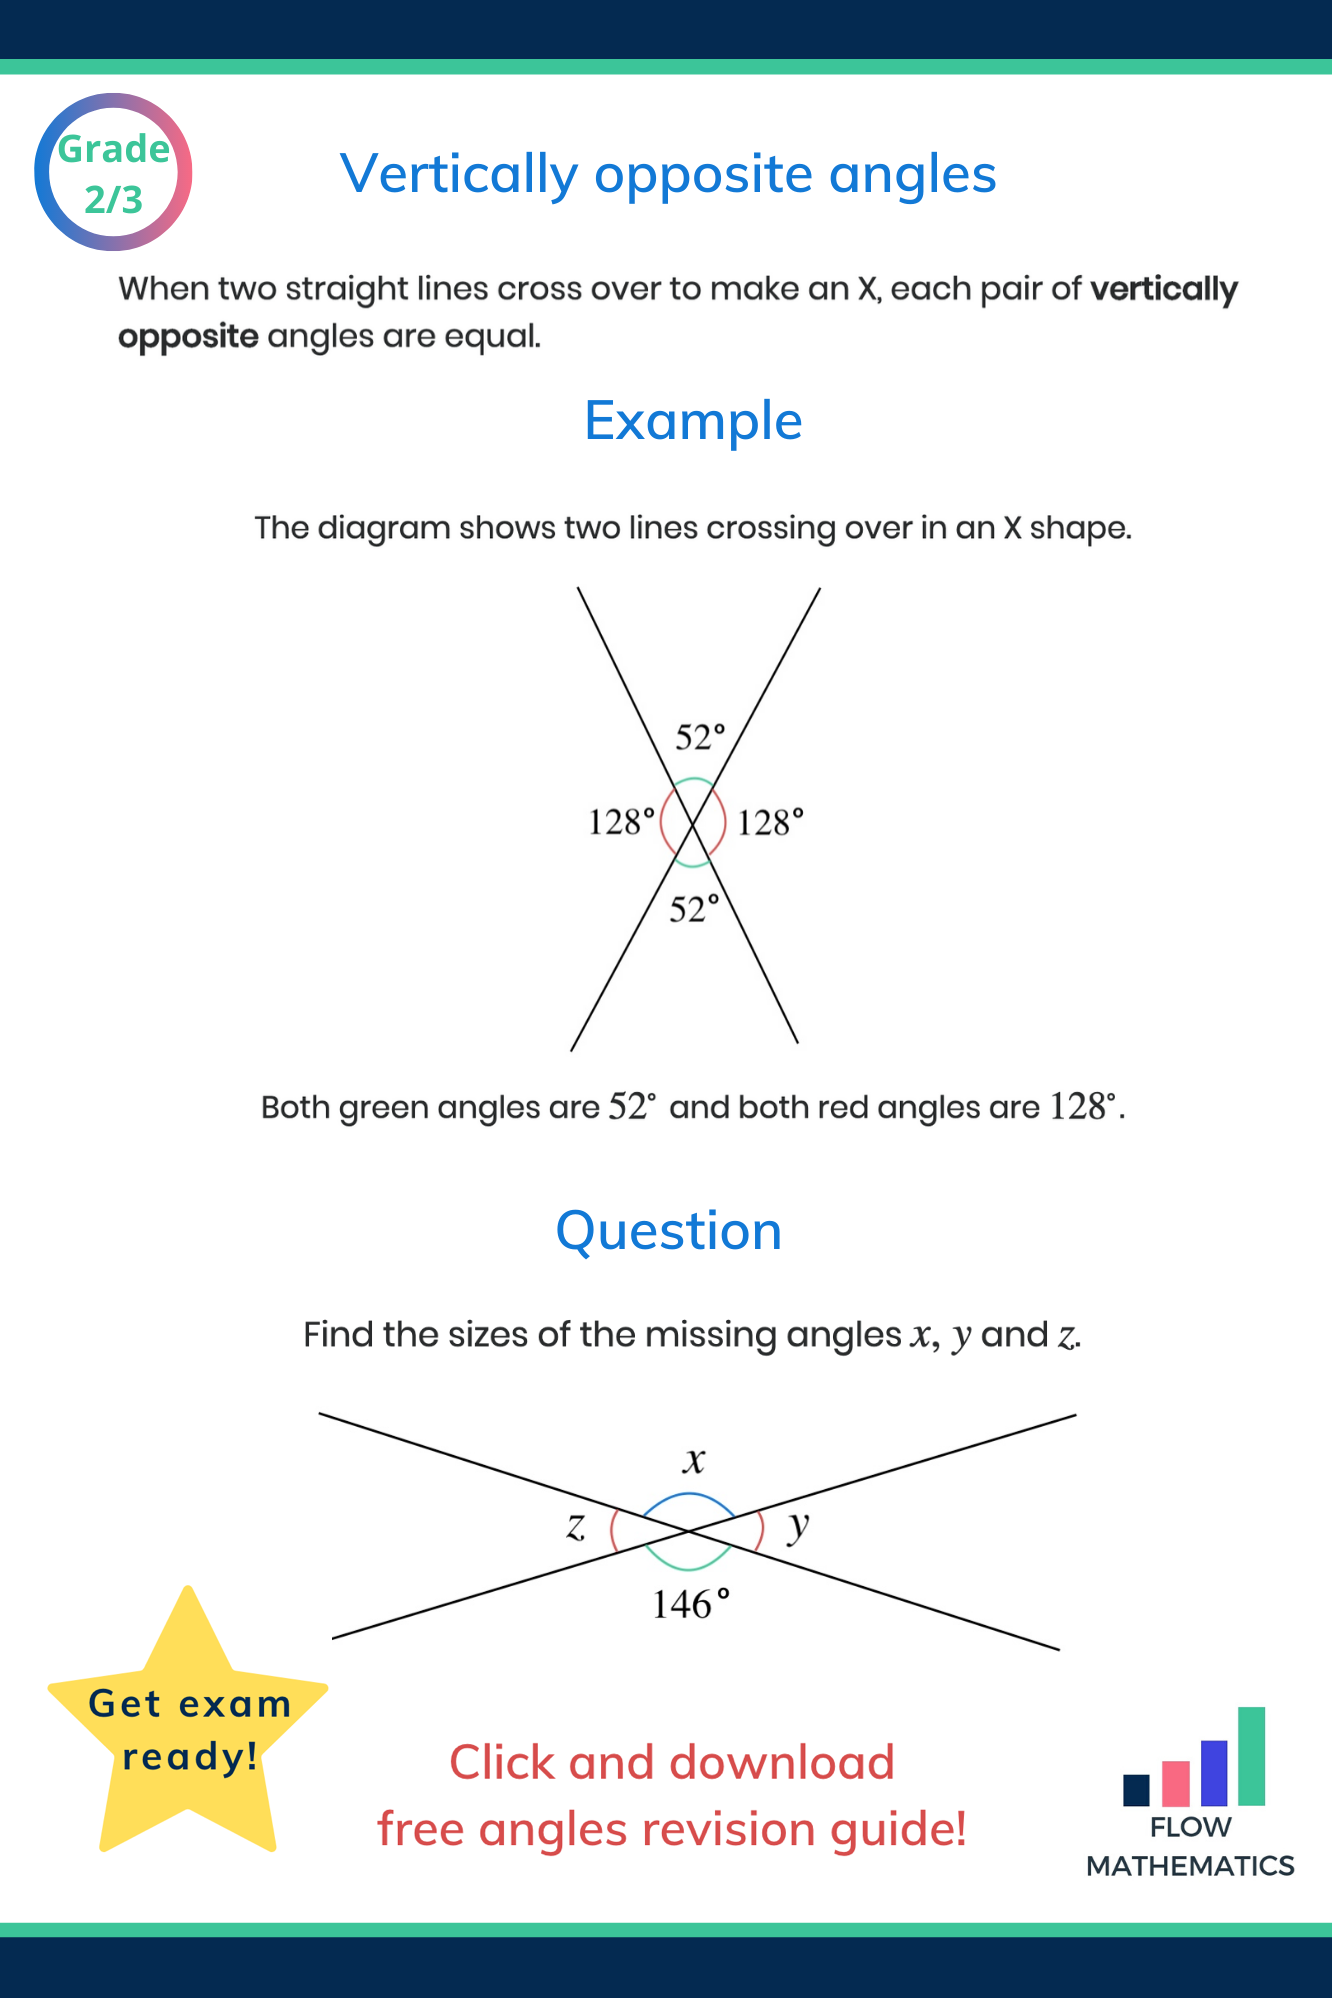 Angles Revision Guide In